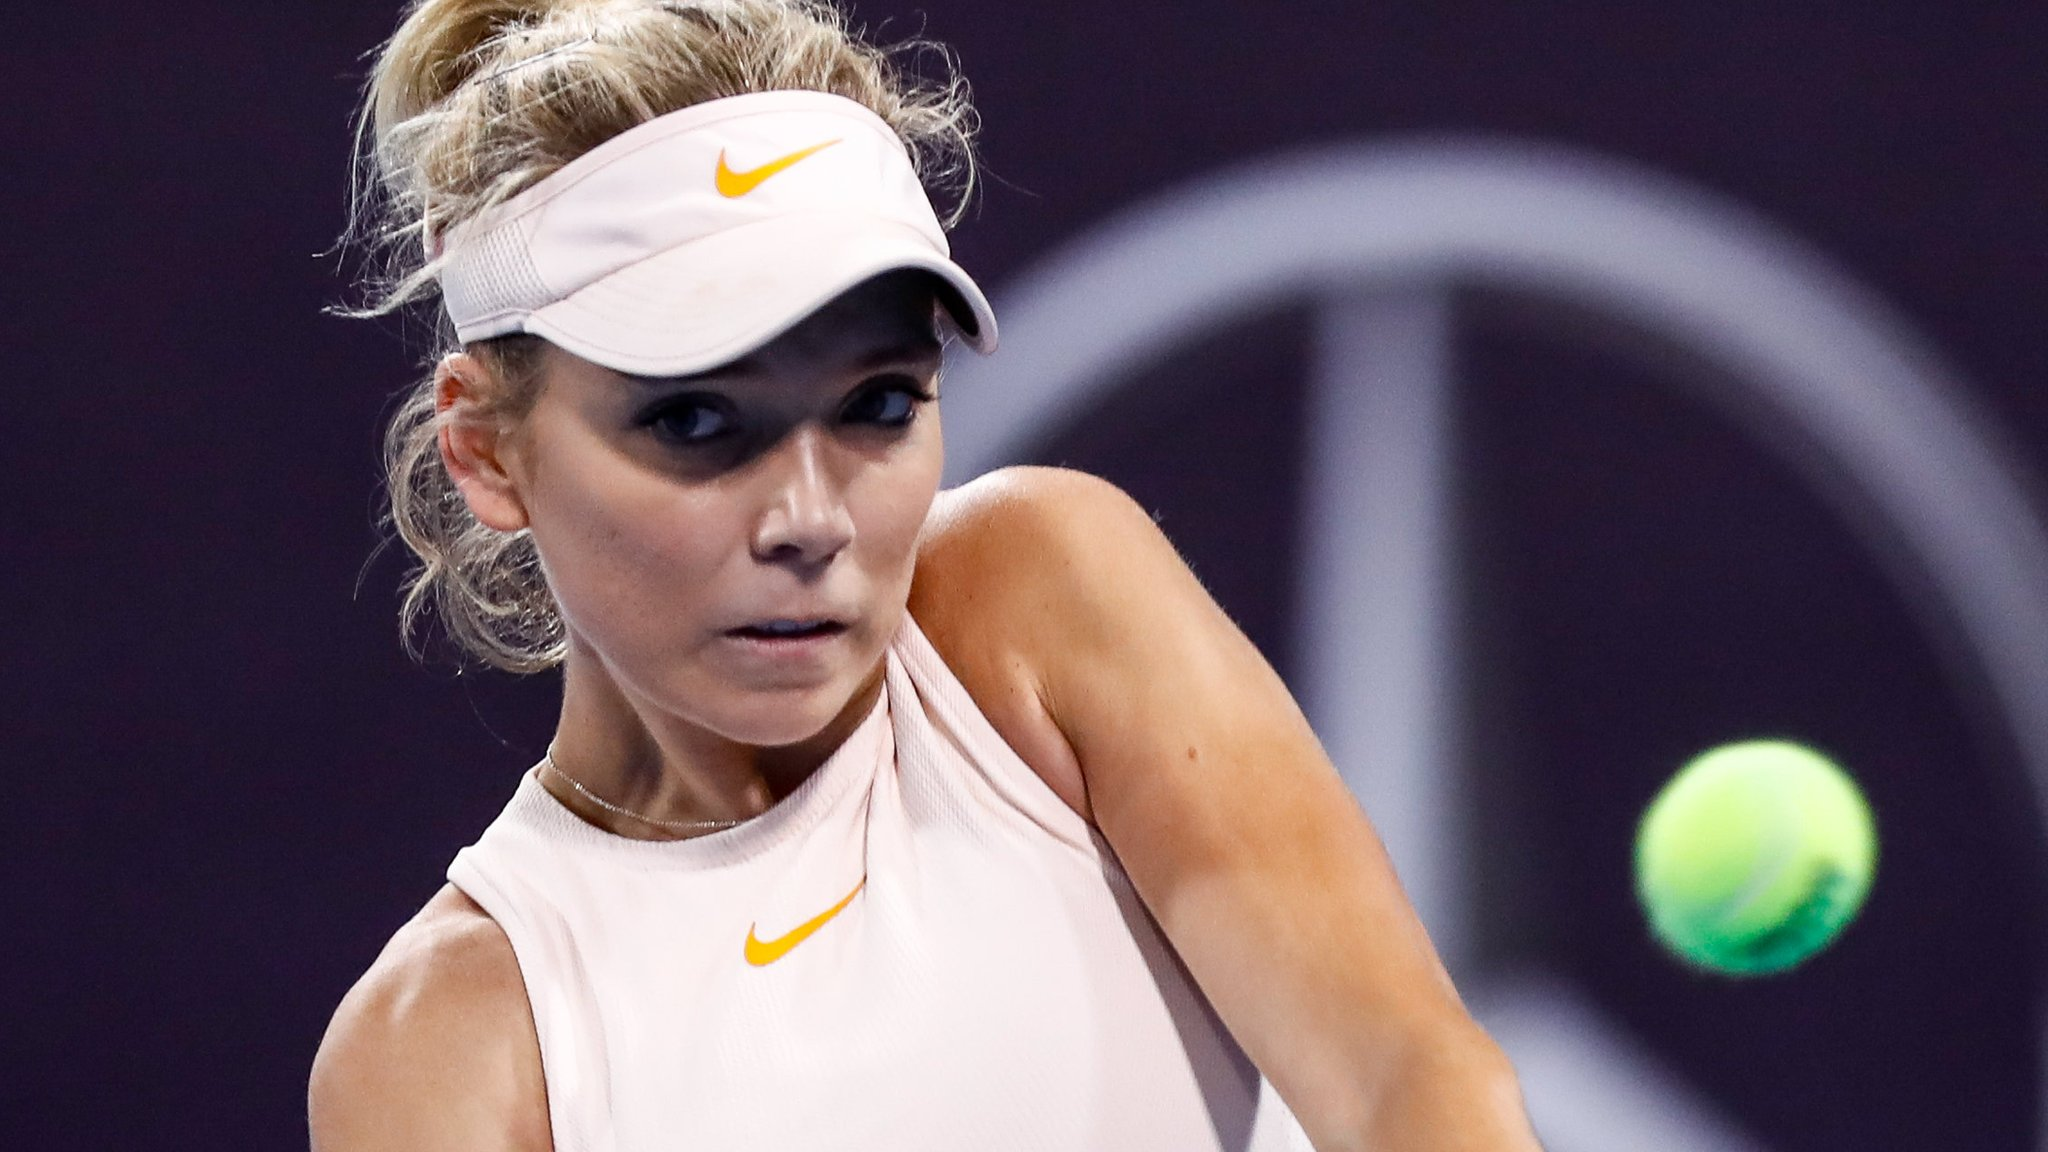 Boulter beaten by Pliskova in China but set to reach top 100